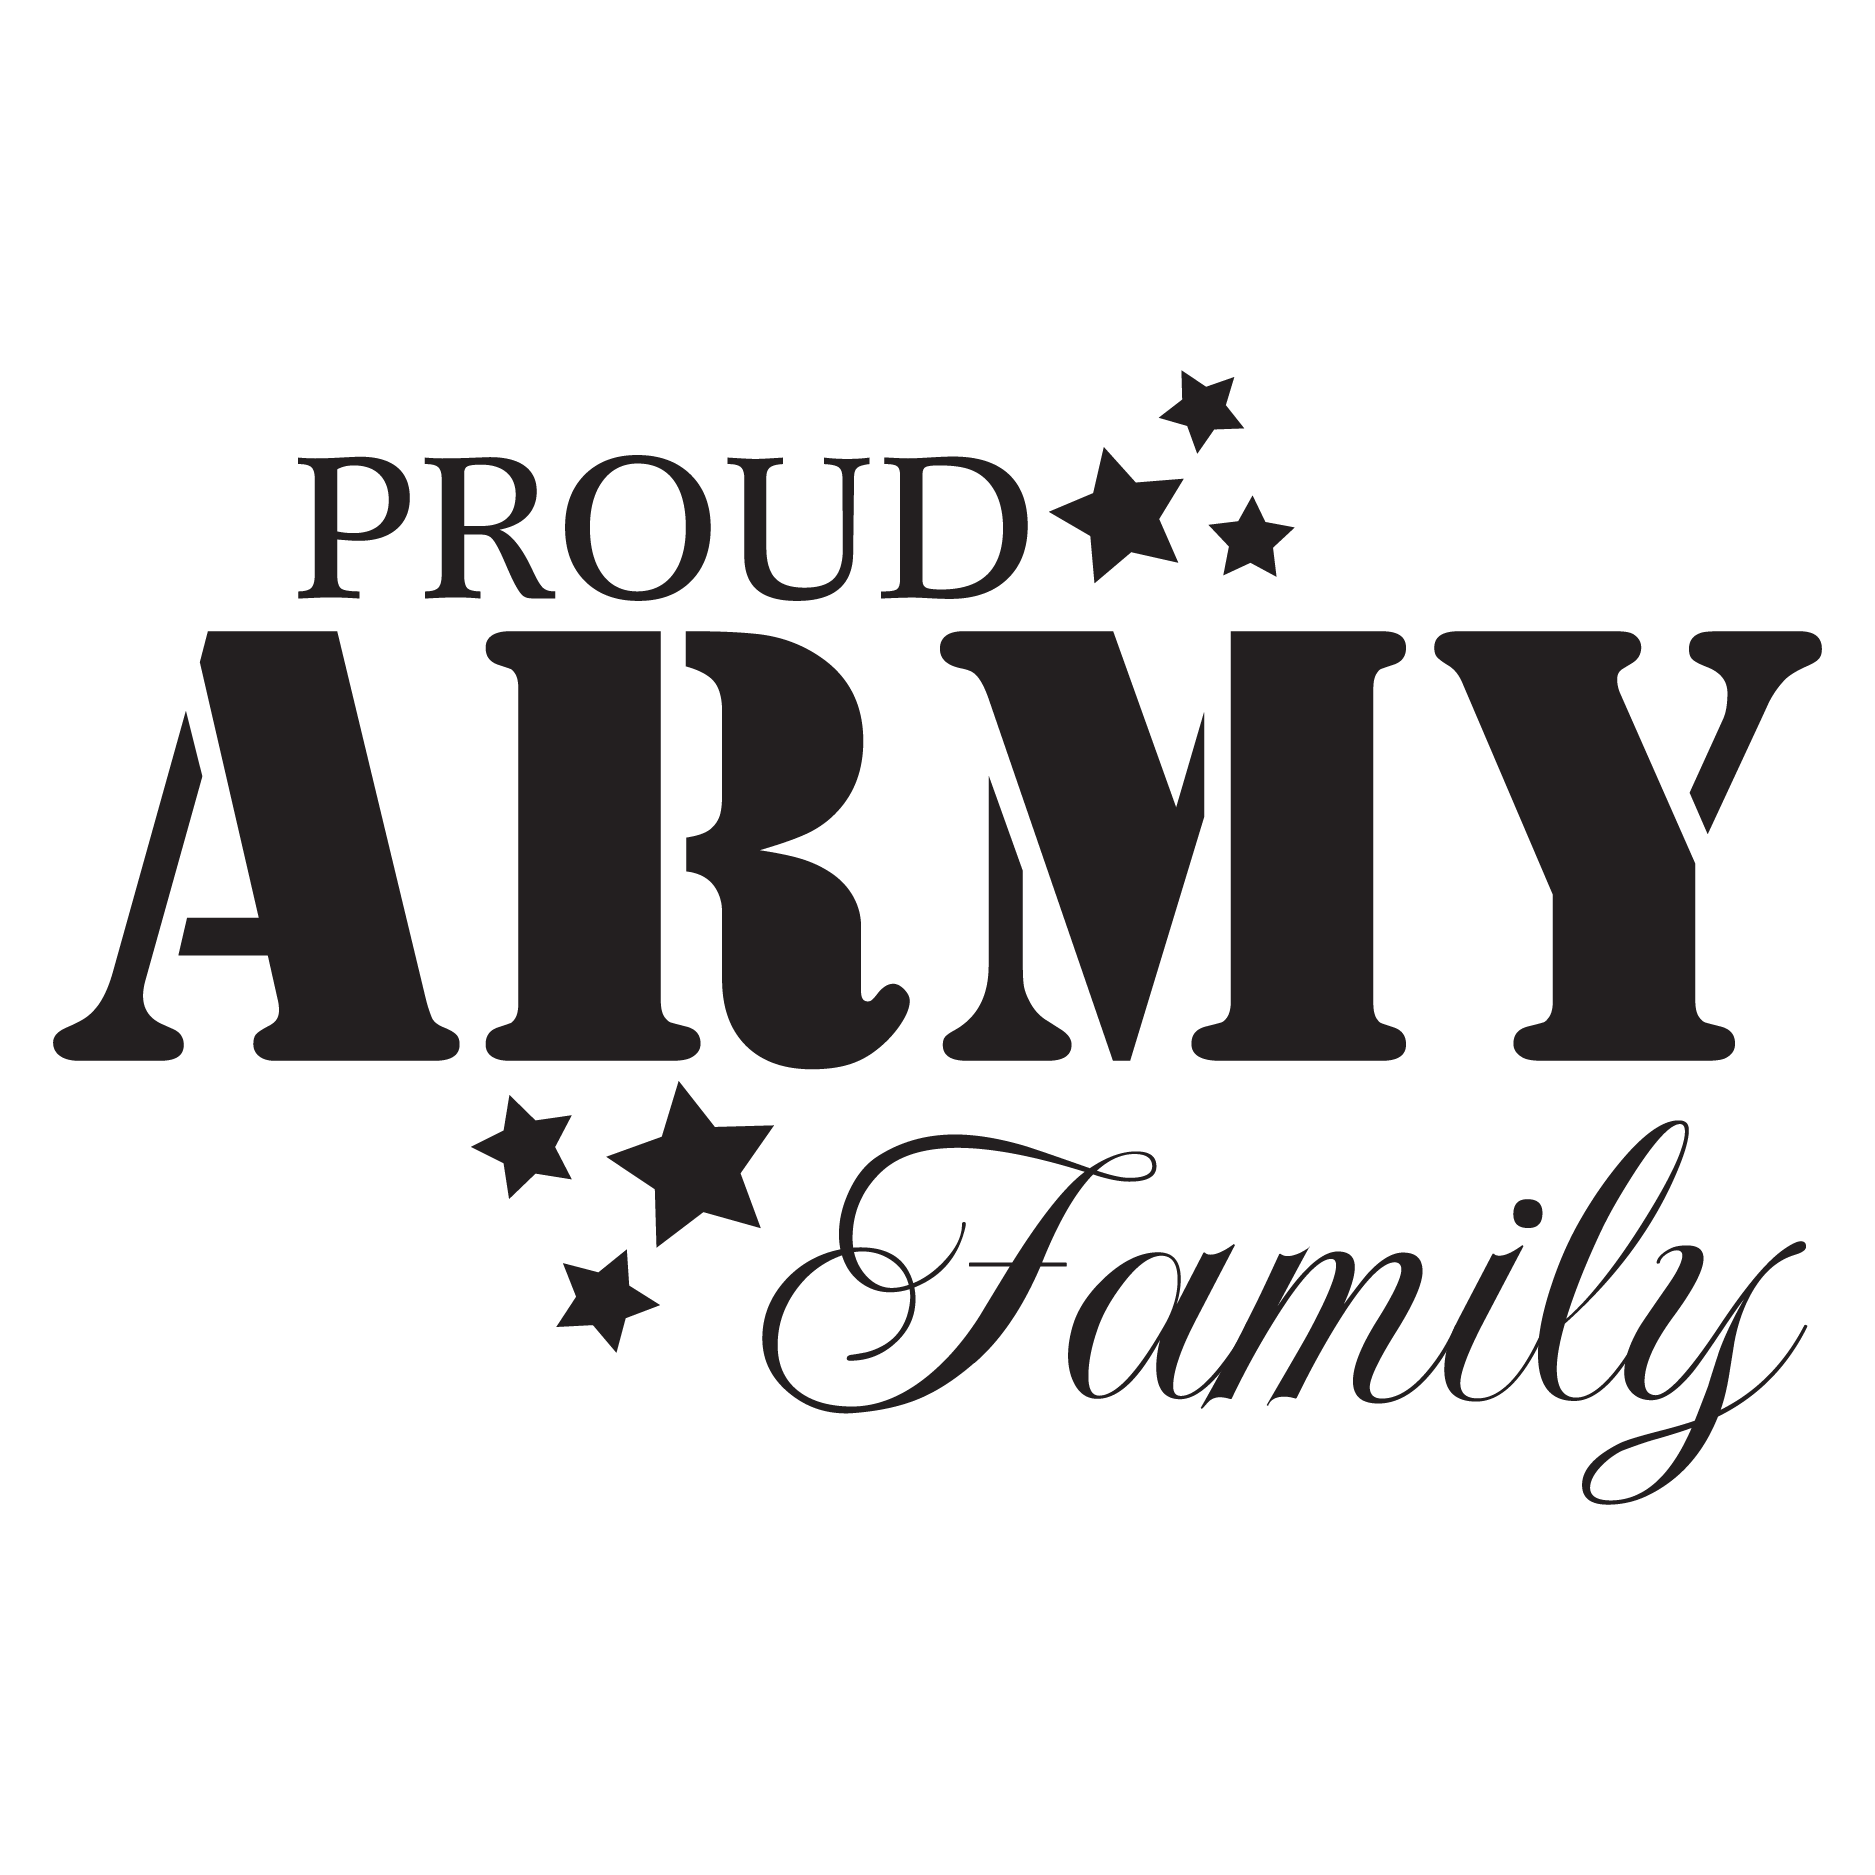 Proud Army Family Wall Quotes Decal